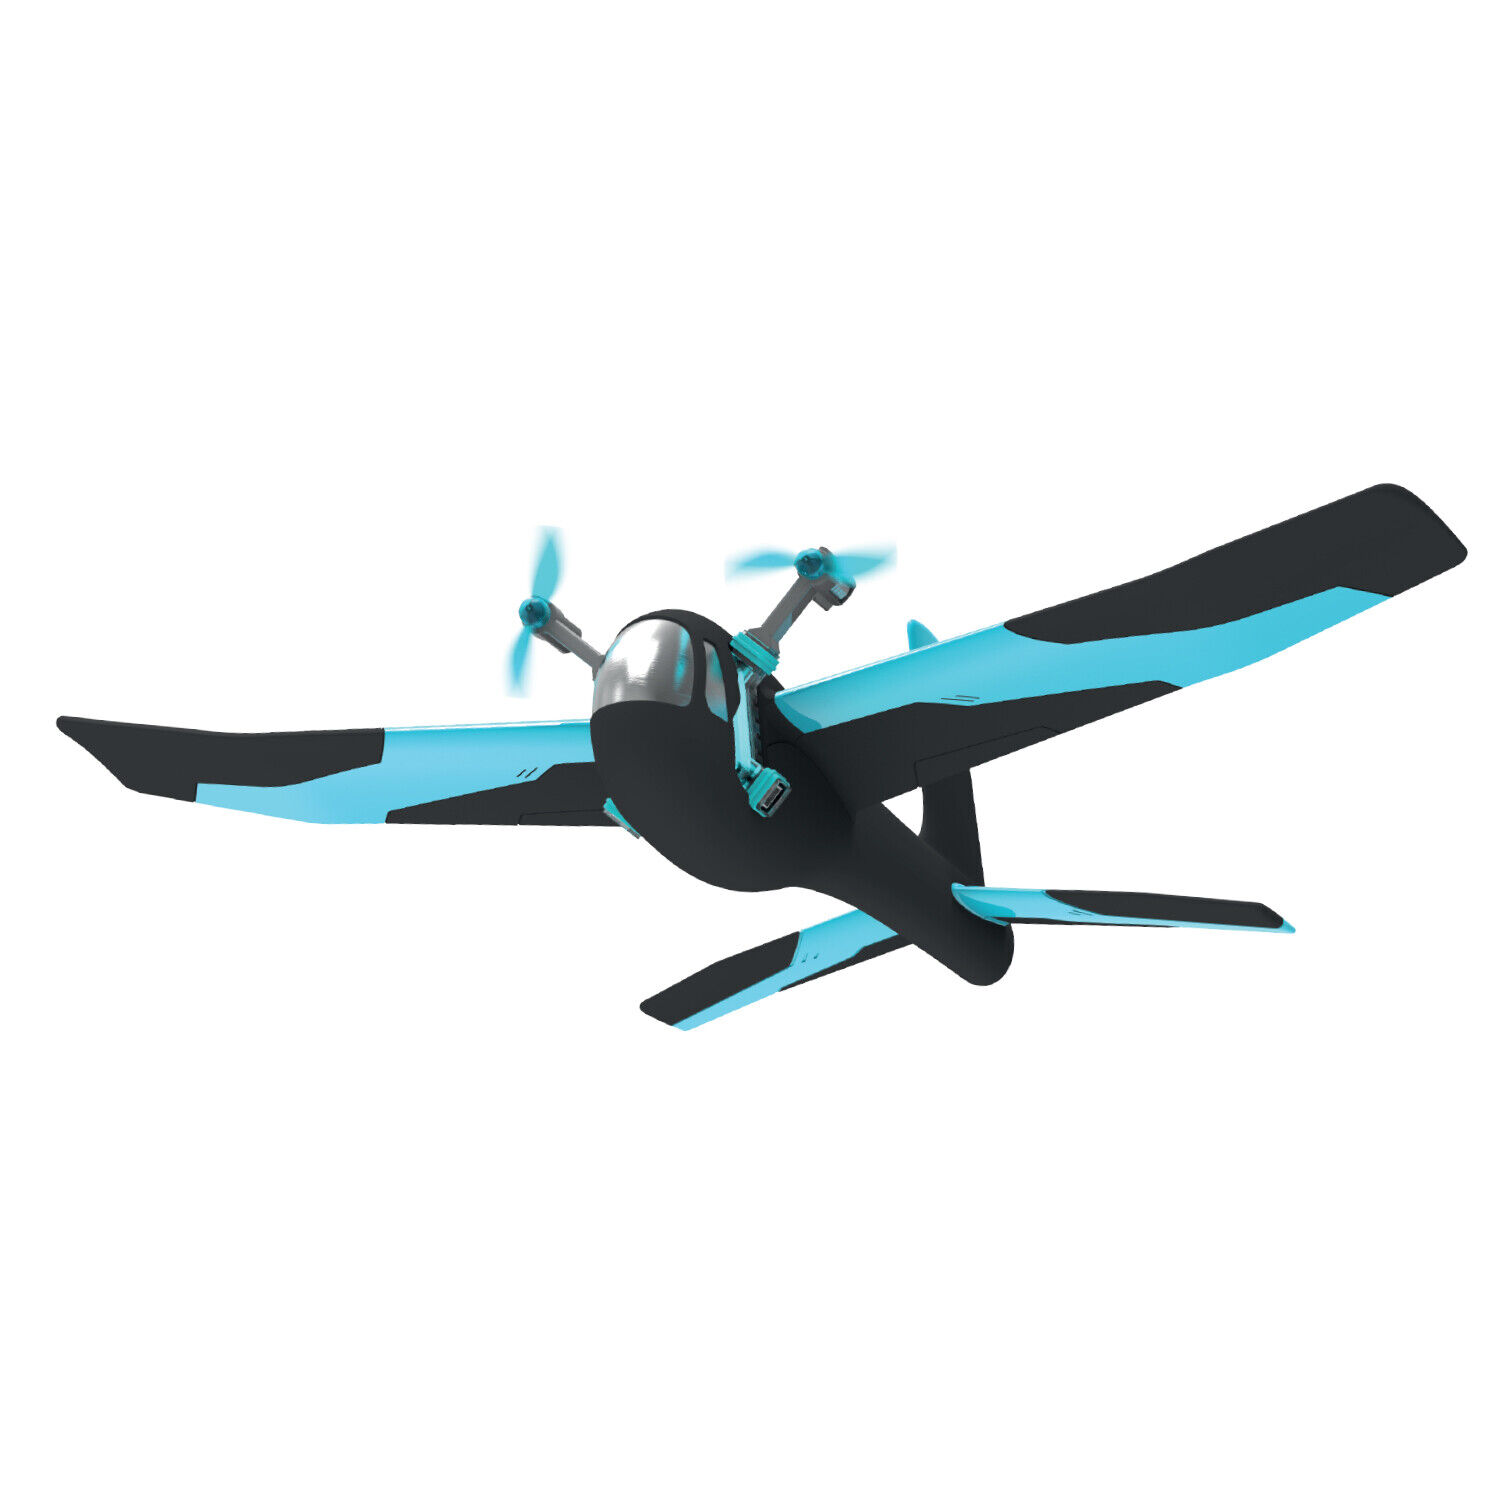 SmartCore 6 Separate Models RC Kit - Three Land Vehicles and Three Sky Vehicles 2